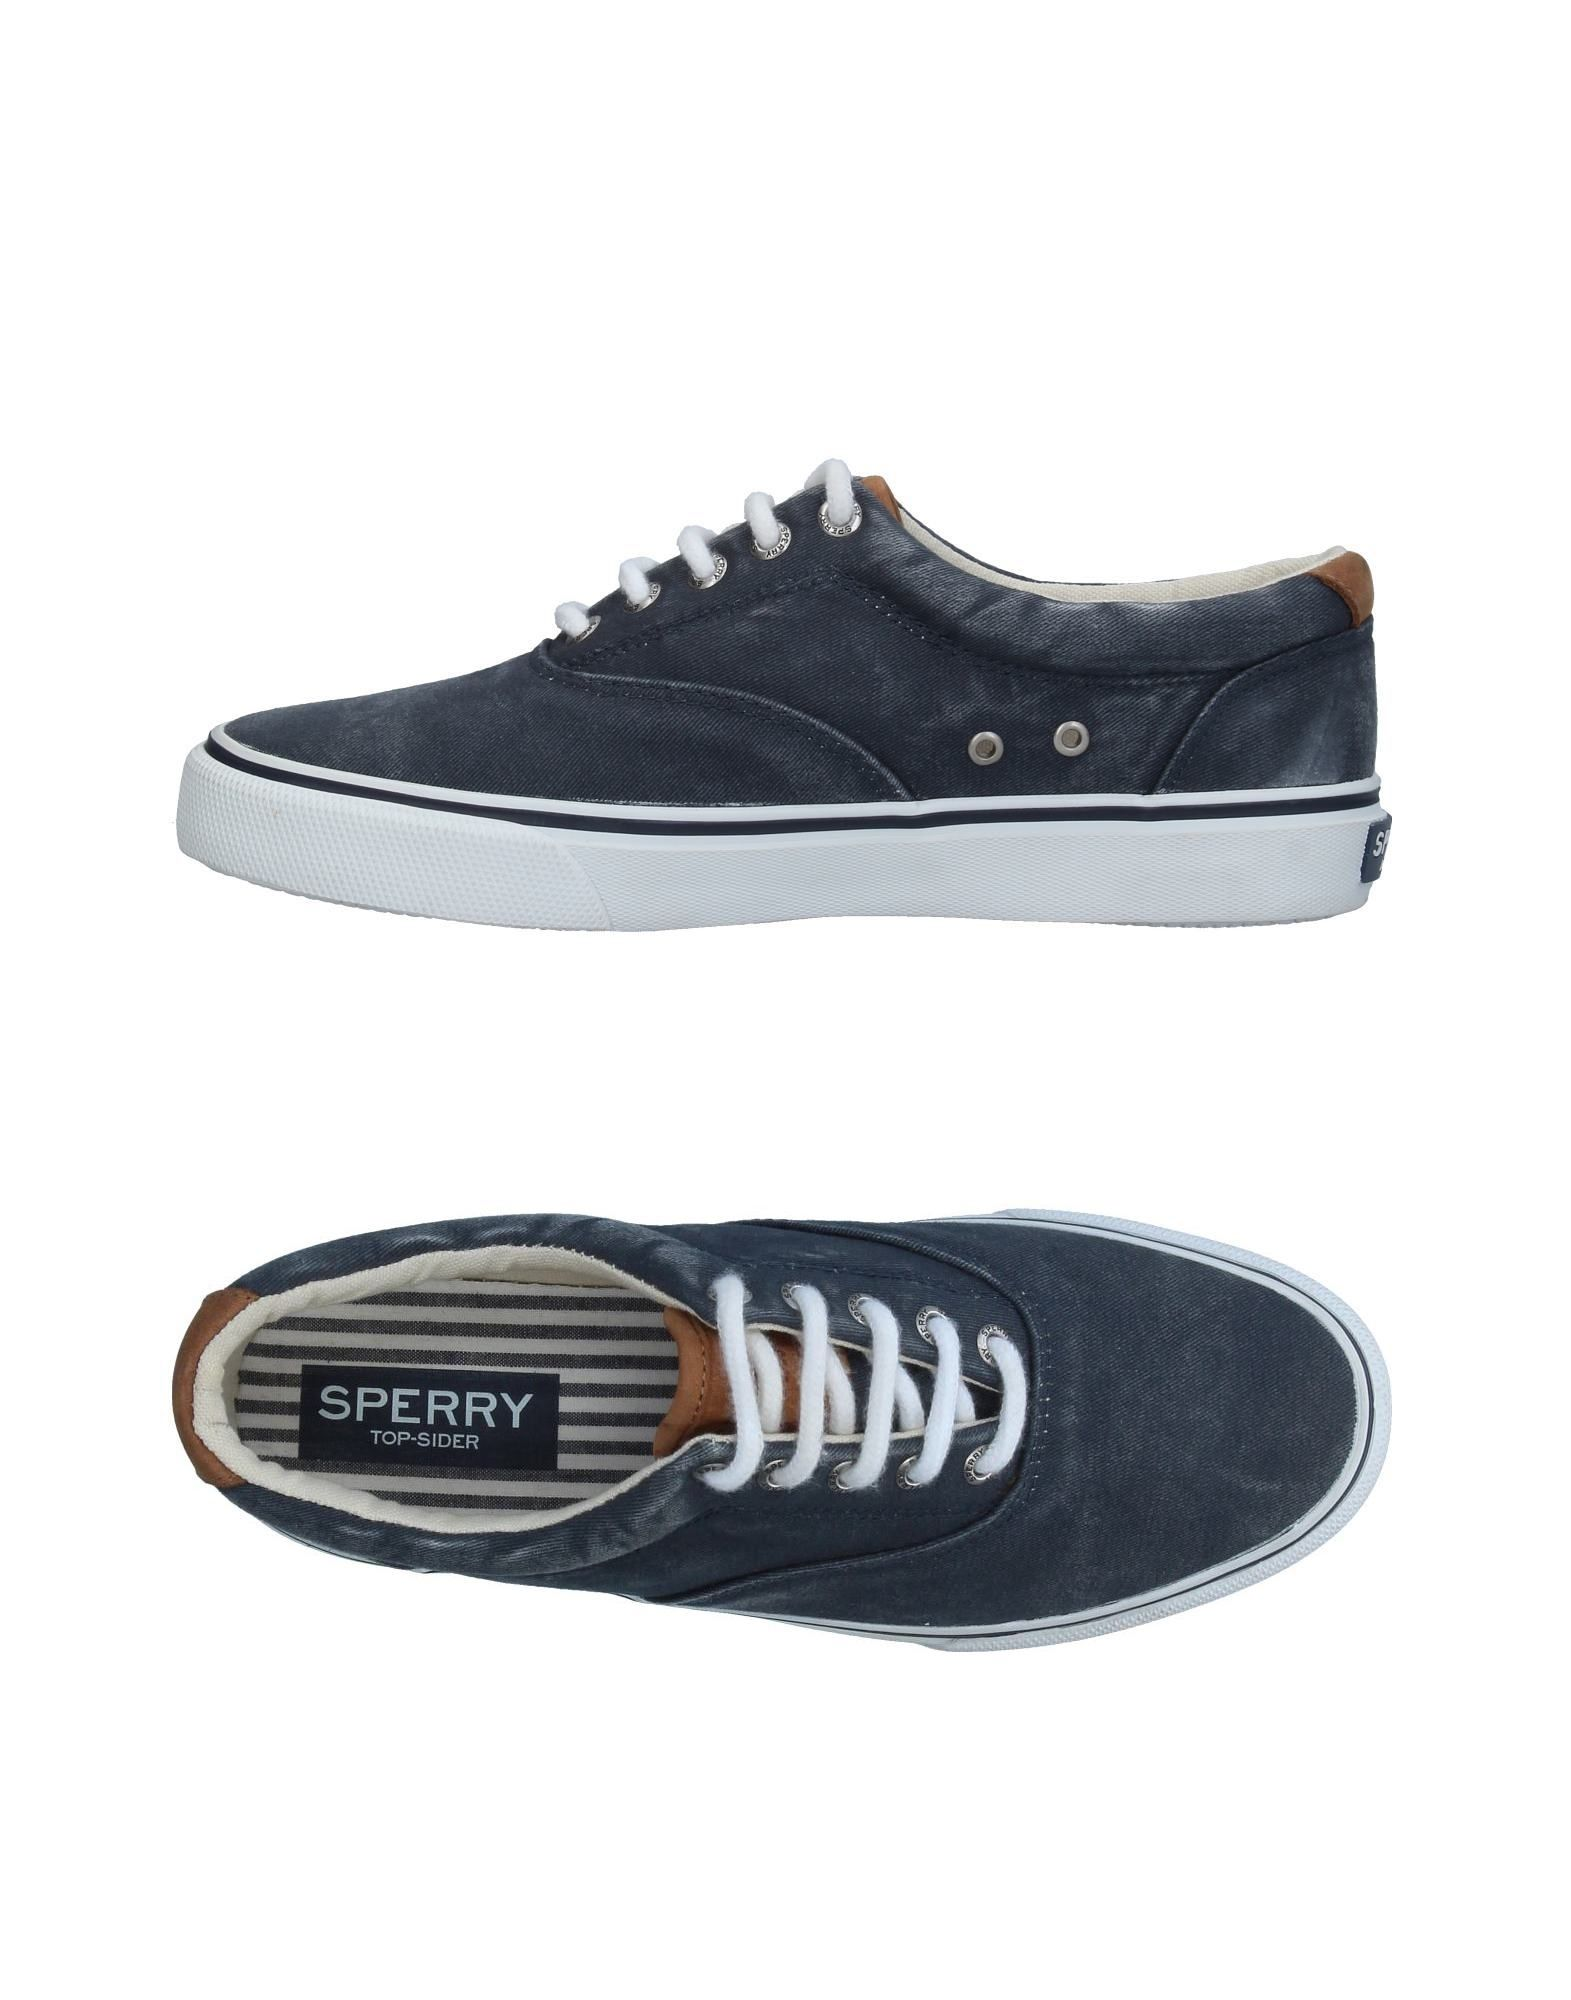 Baskets Sperry Top-Sider Femme - Baskets Sperry Top-Sider Bleu foncé Mode pas cher et belle